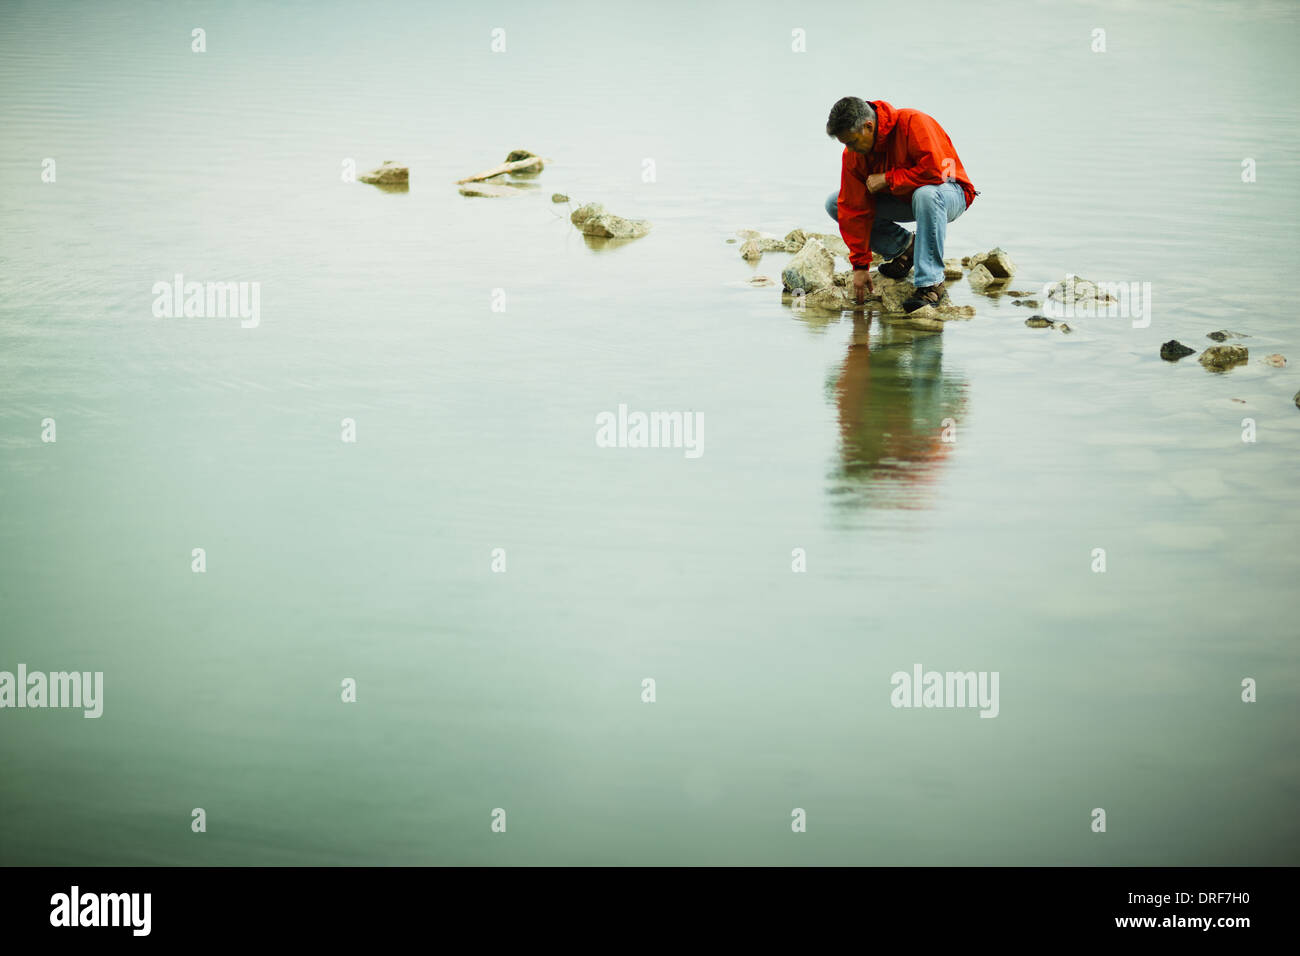 Colorado USA man balanced on stepping stone pensive pose - Stock Image